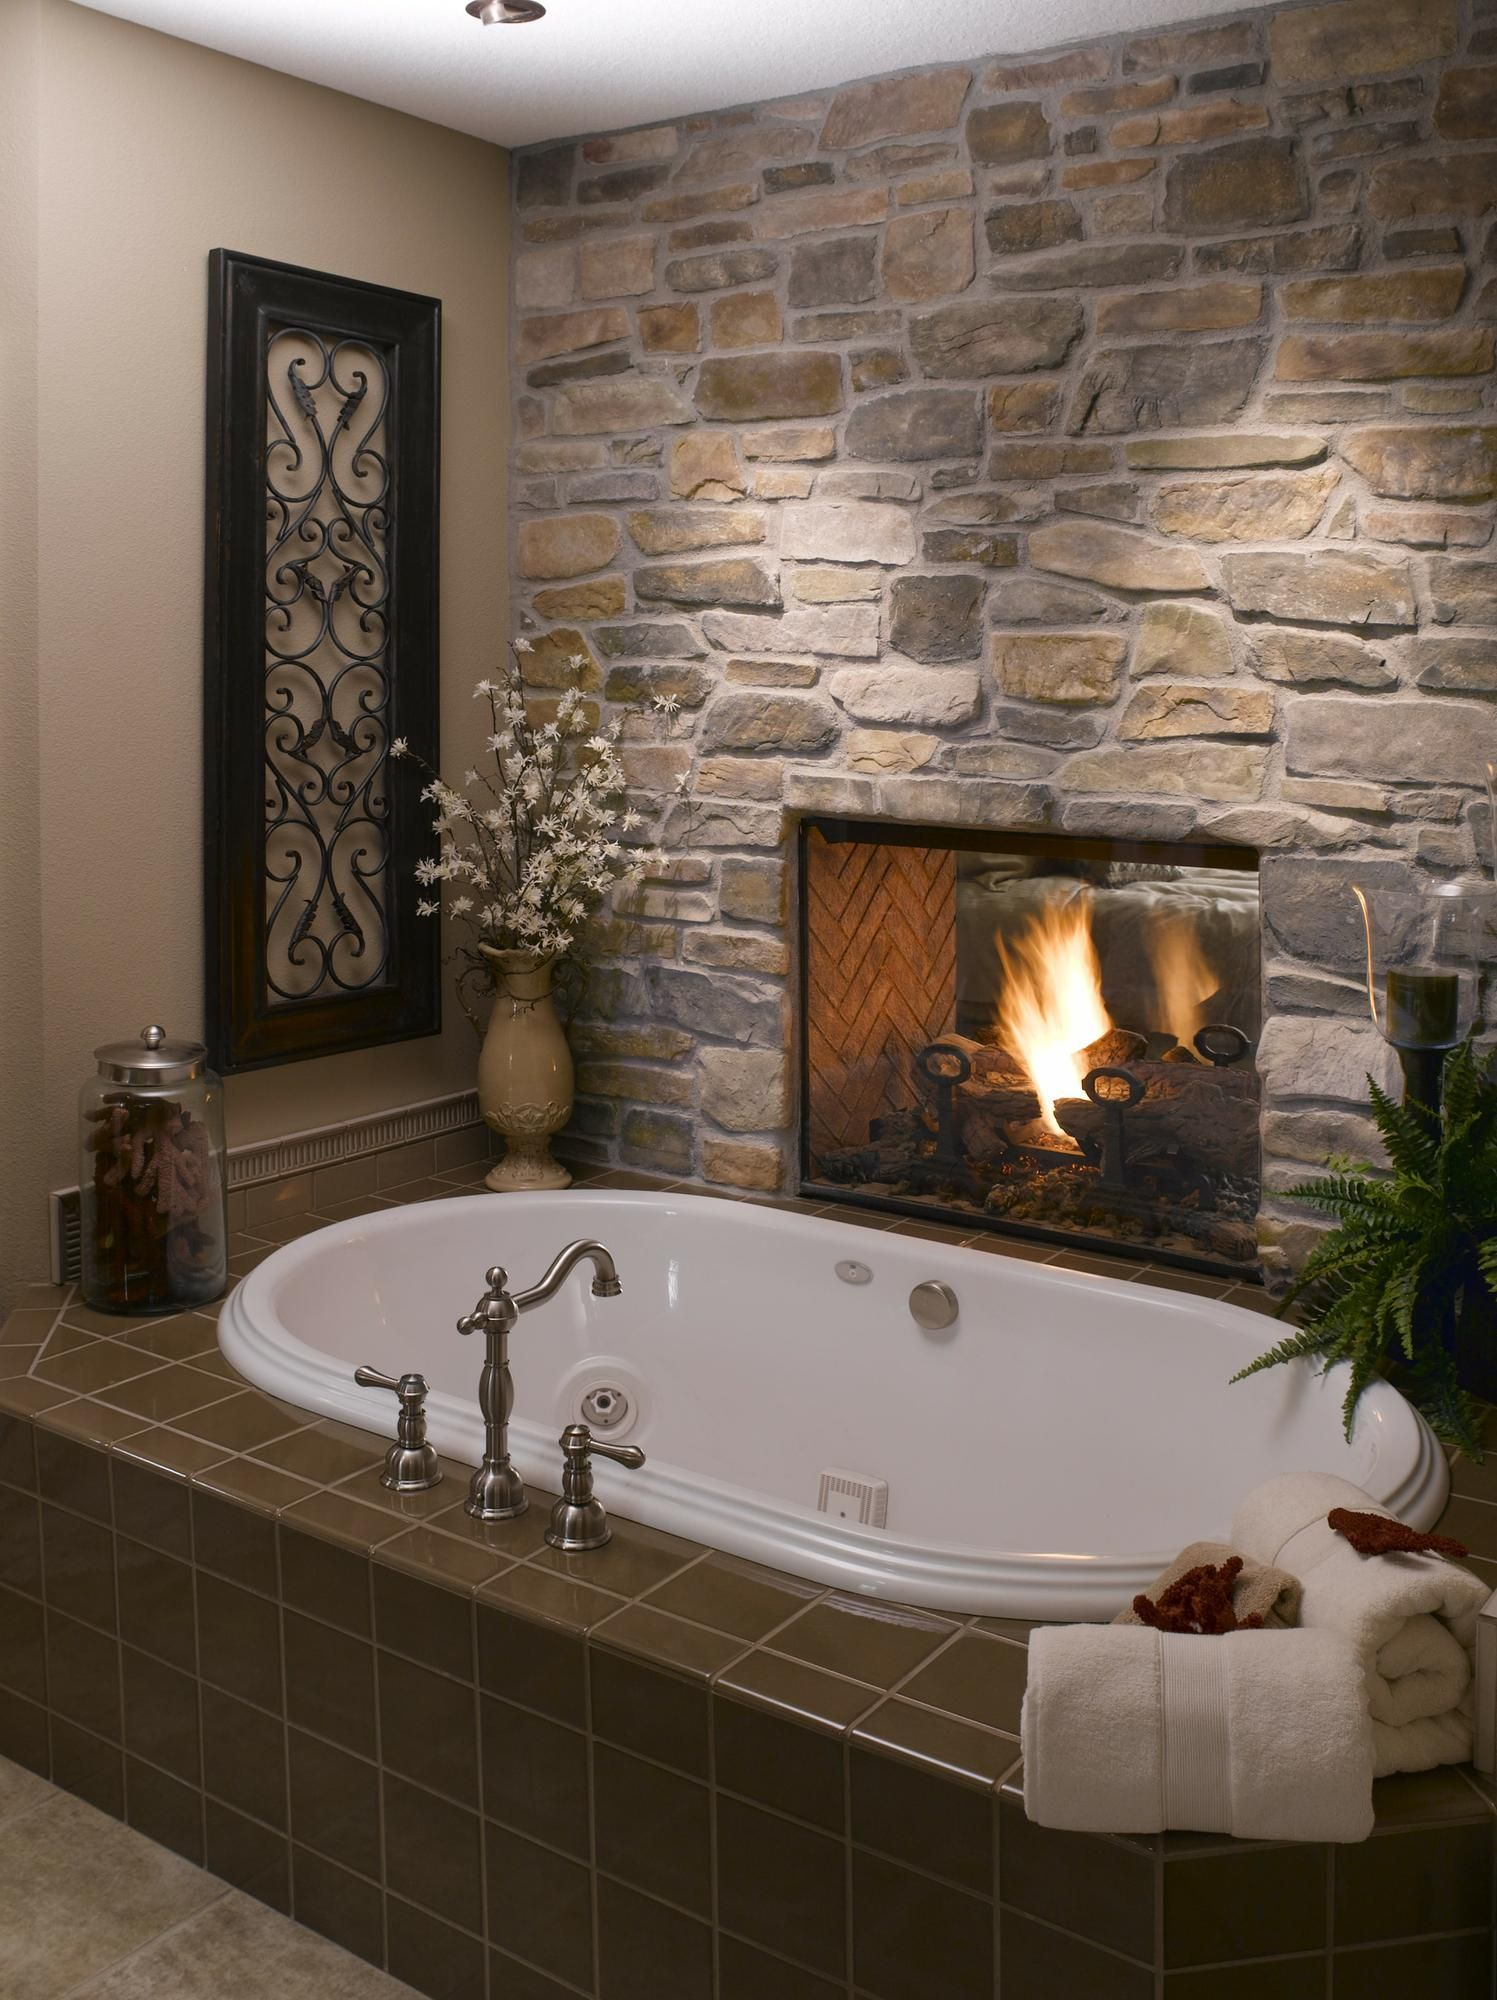 Bedroom stone fireplace - Eldorado Stone Two Sided Fireplace Facing Both Bedroom And Bathroom